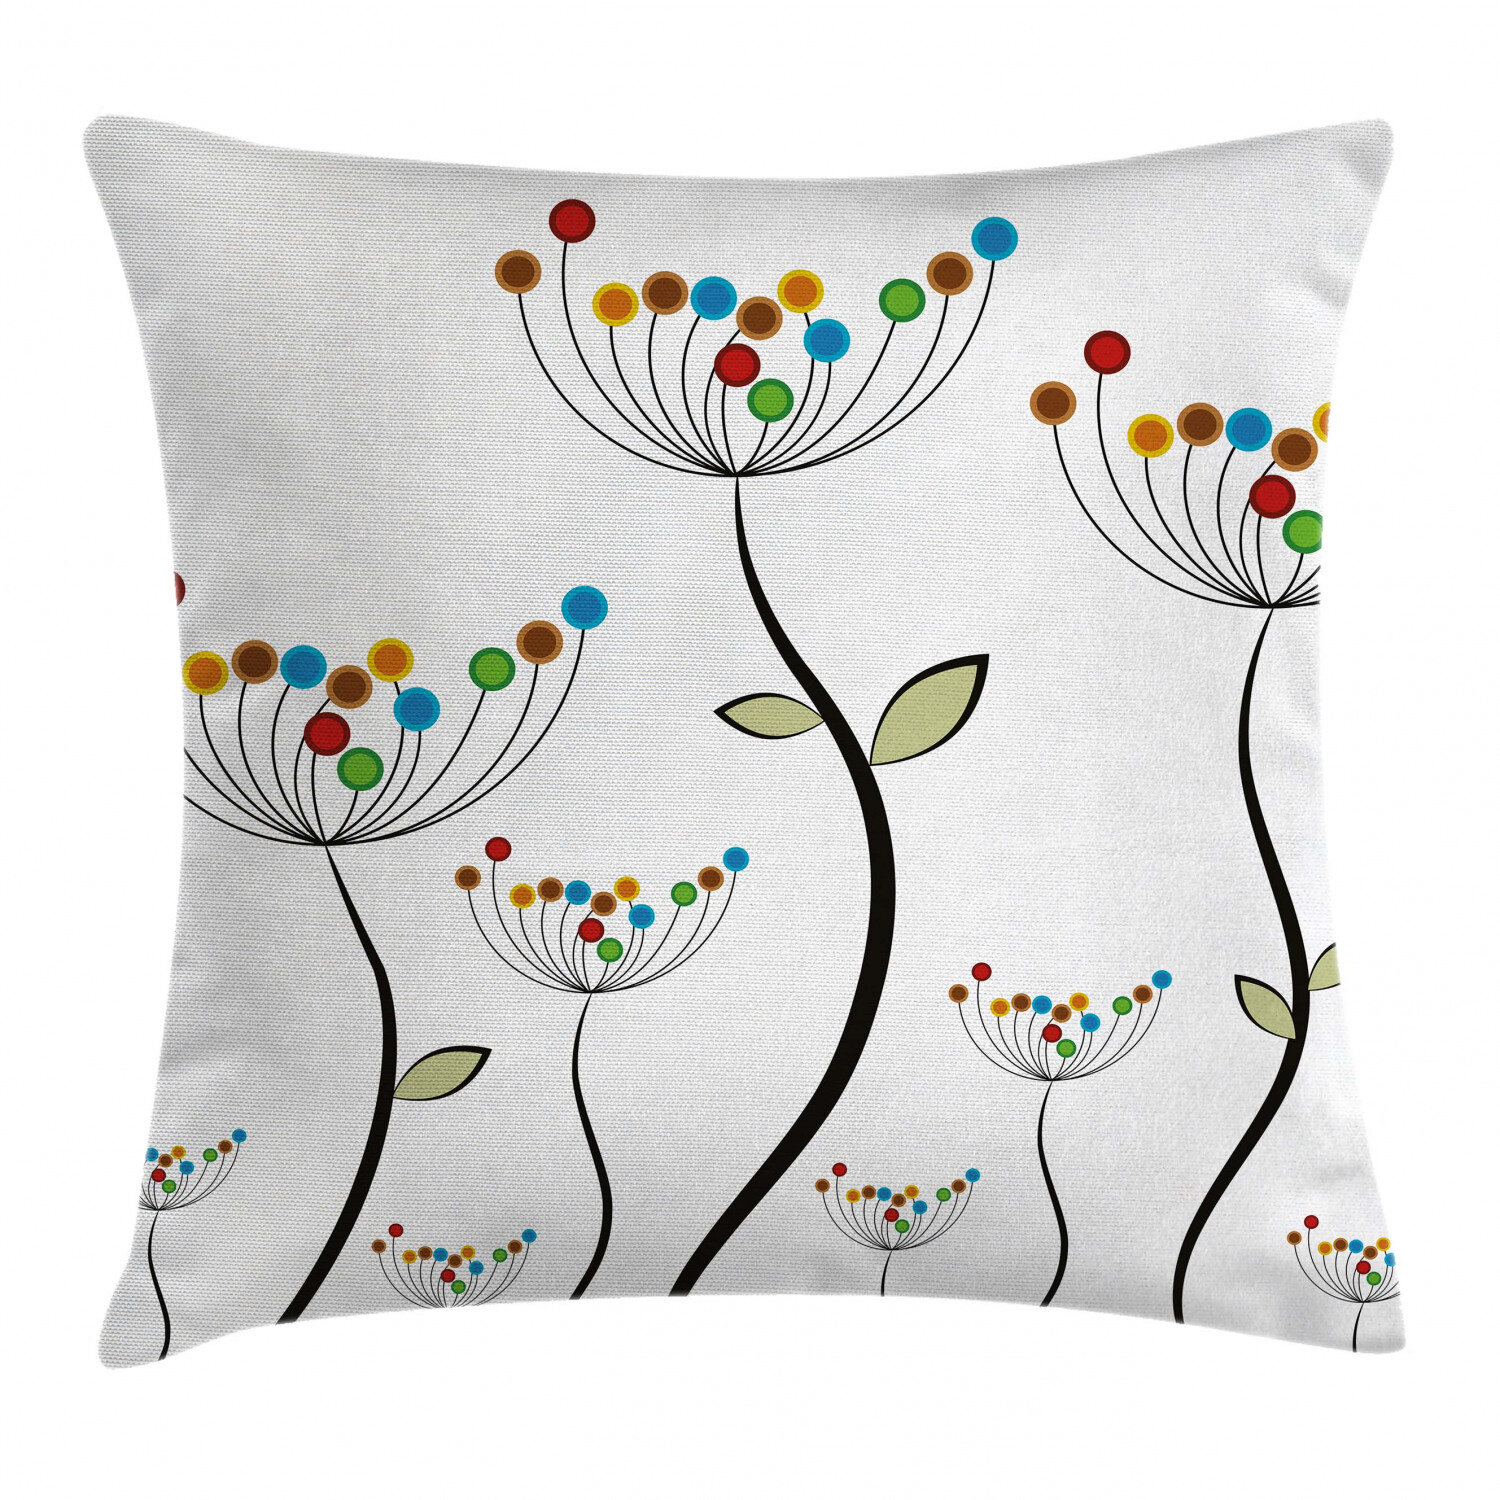 East Urban Home Dandelions Stems Buds Leaves Bedding Plants Wildlife Meadow Cottage Indoor Outdoor Floral 36 Throw Pillow Cover Wayfair